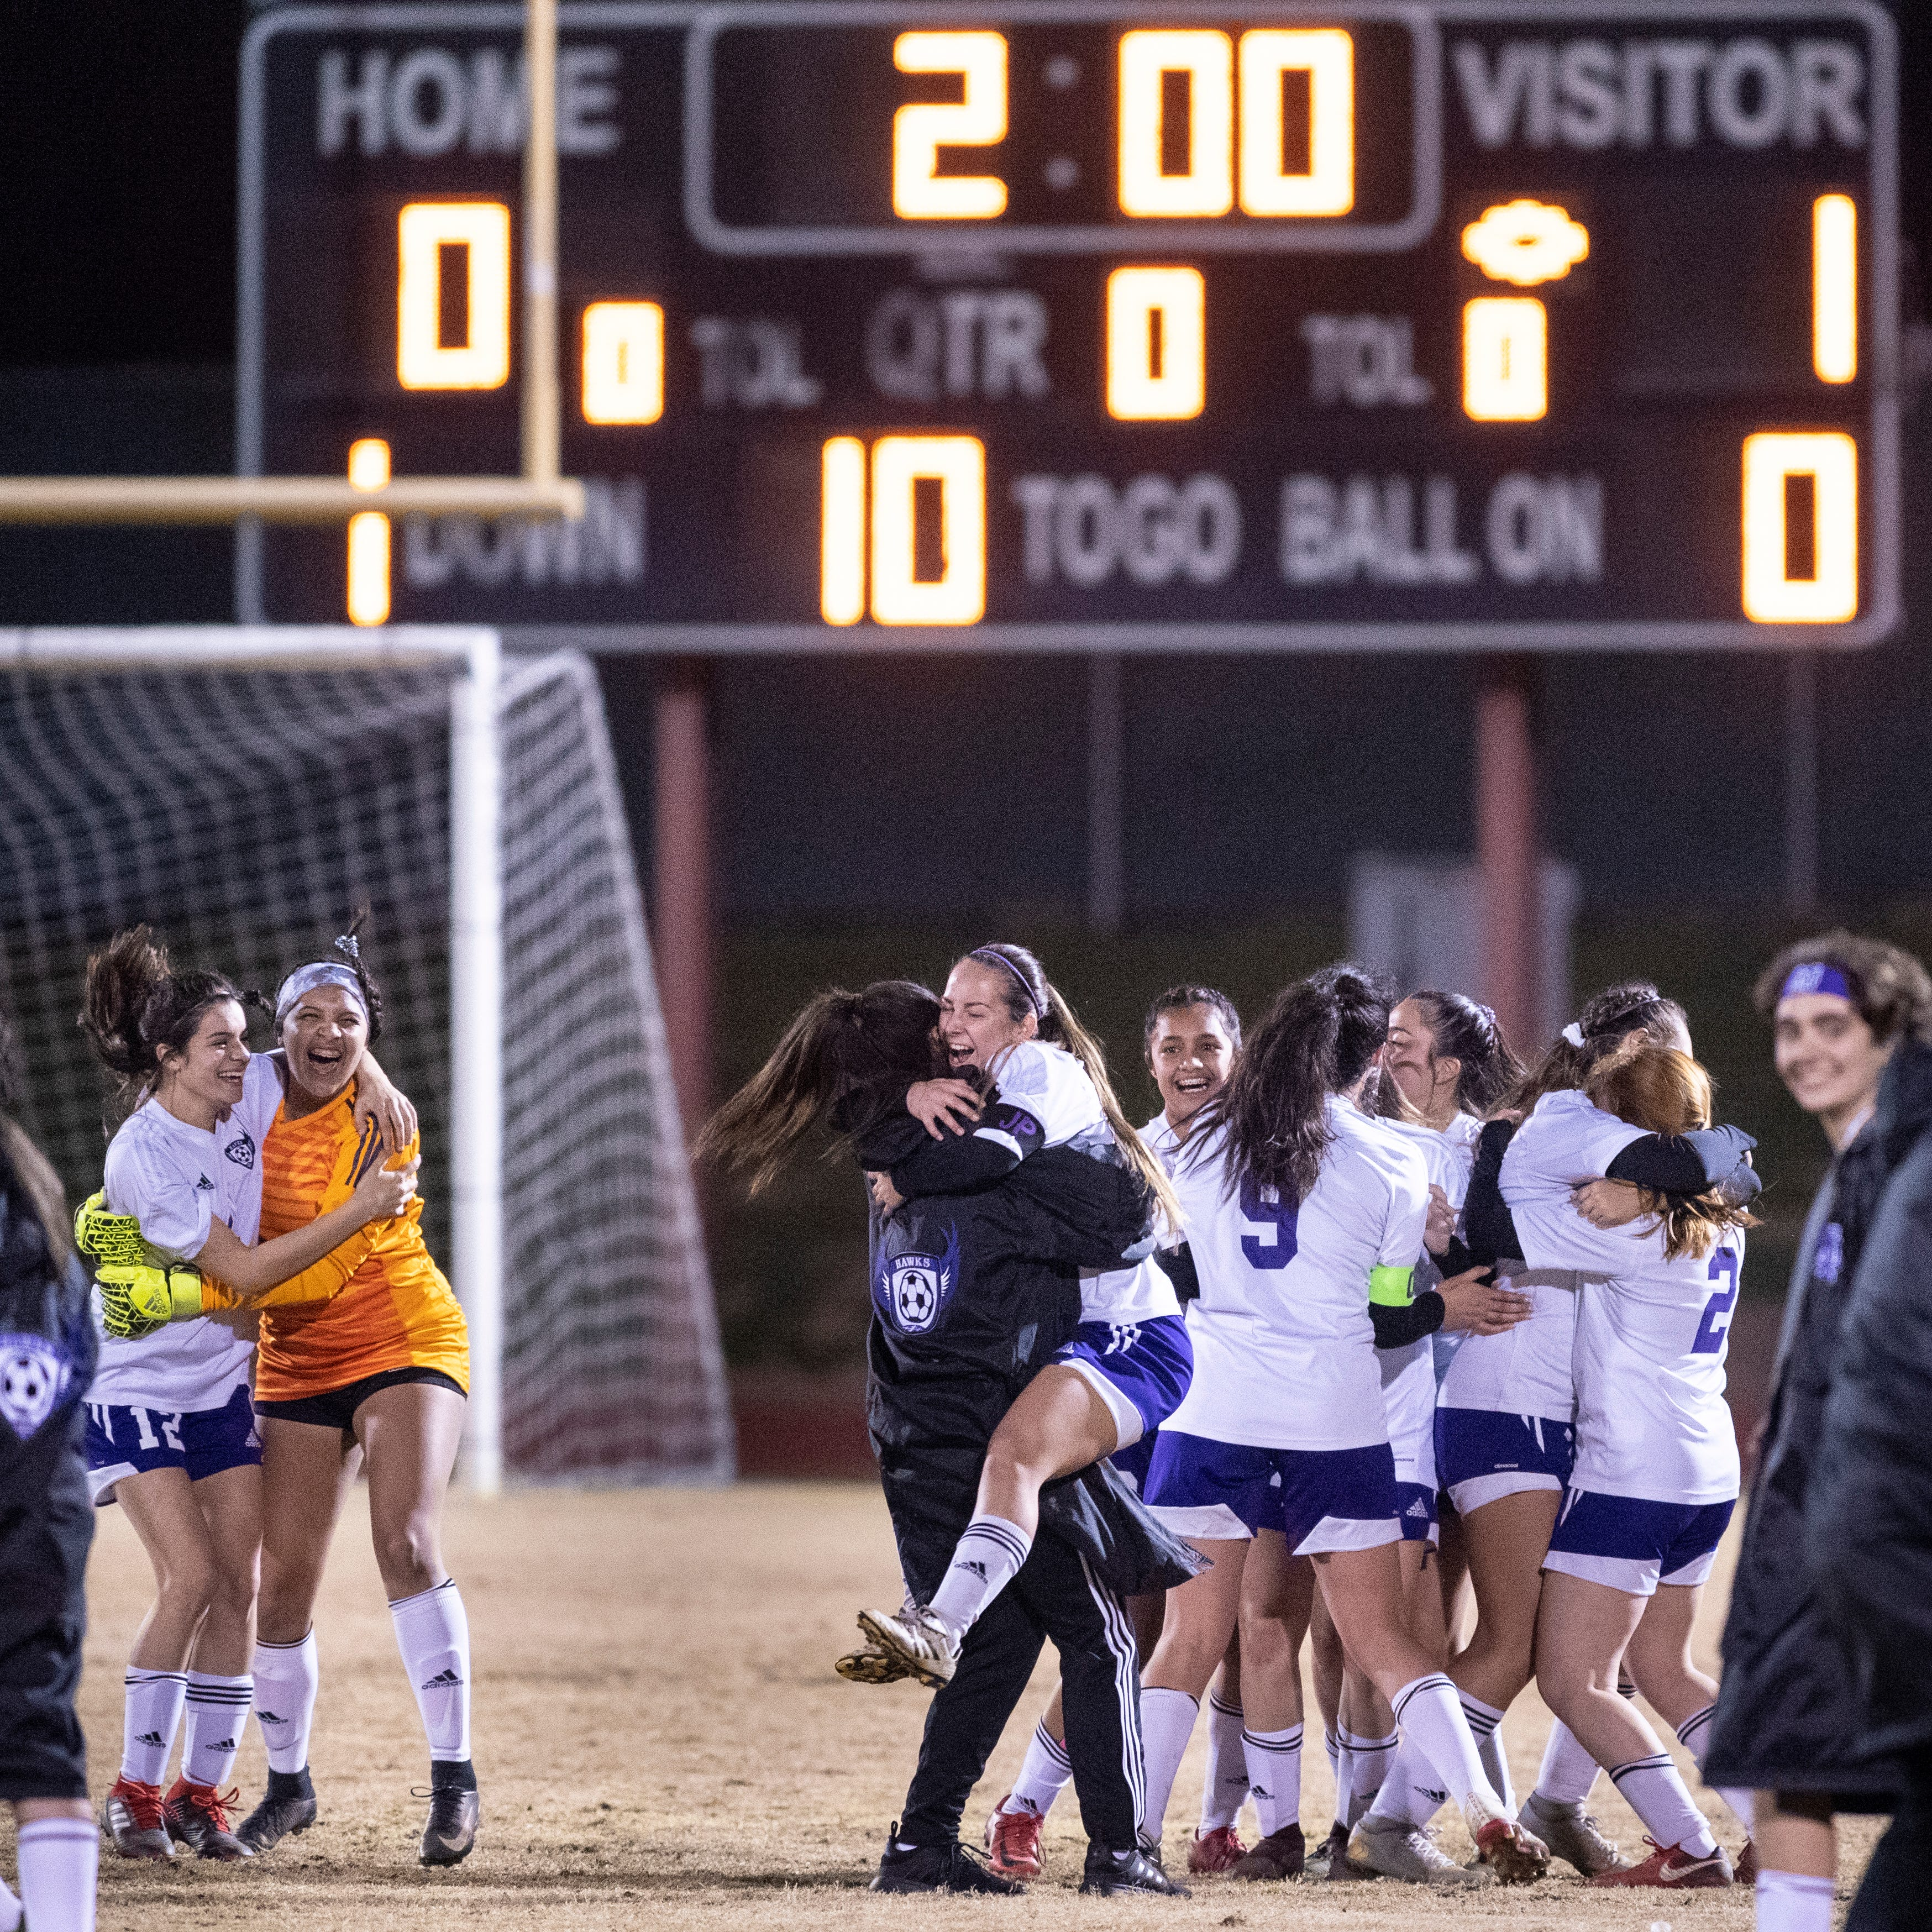 Inspired by the late John Pimentel, Mission Oak wins section championship